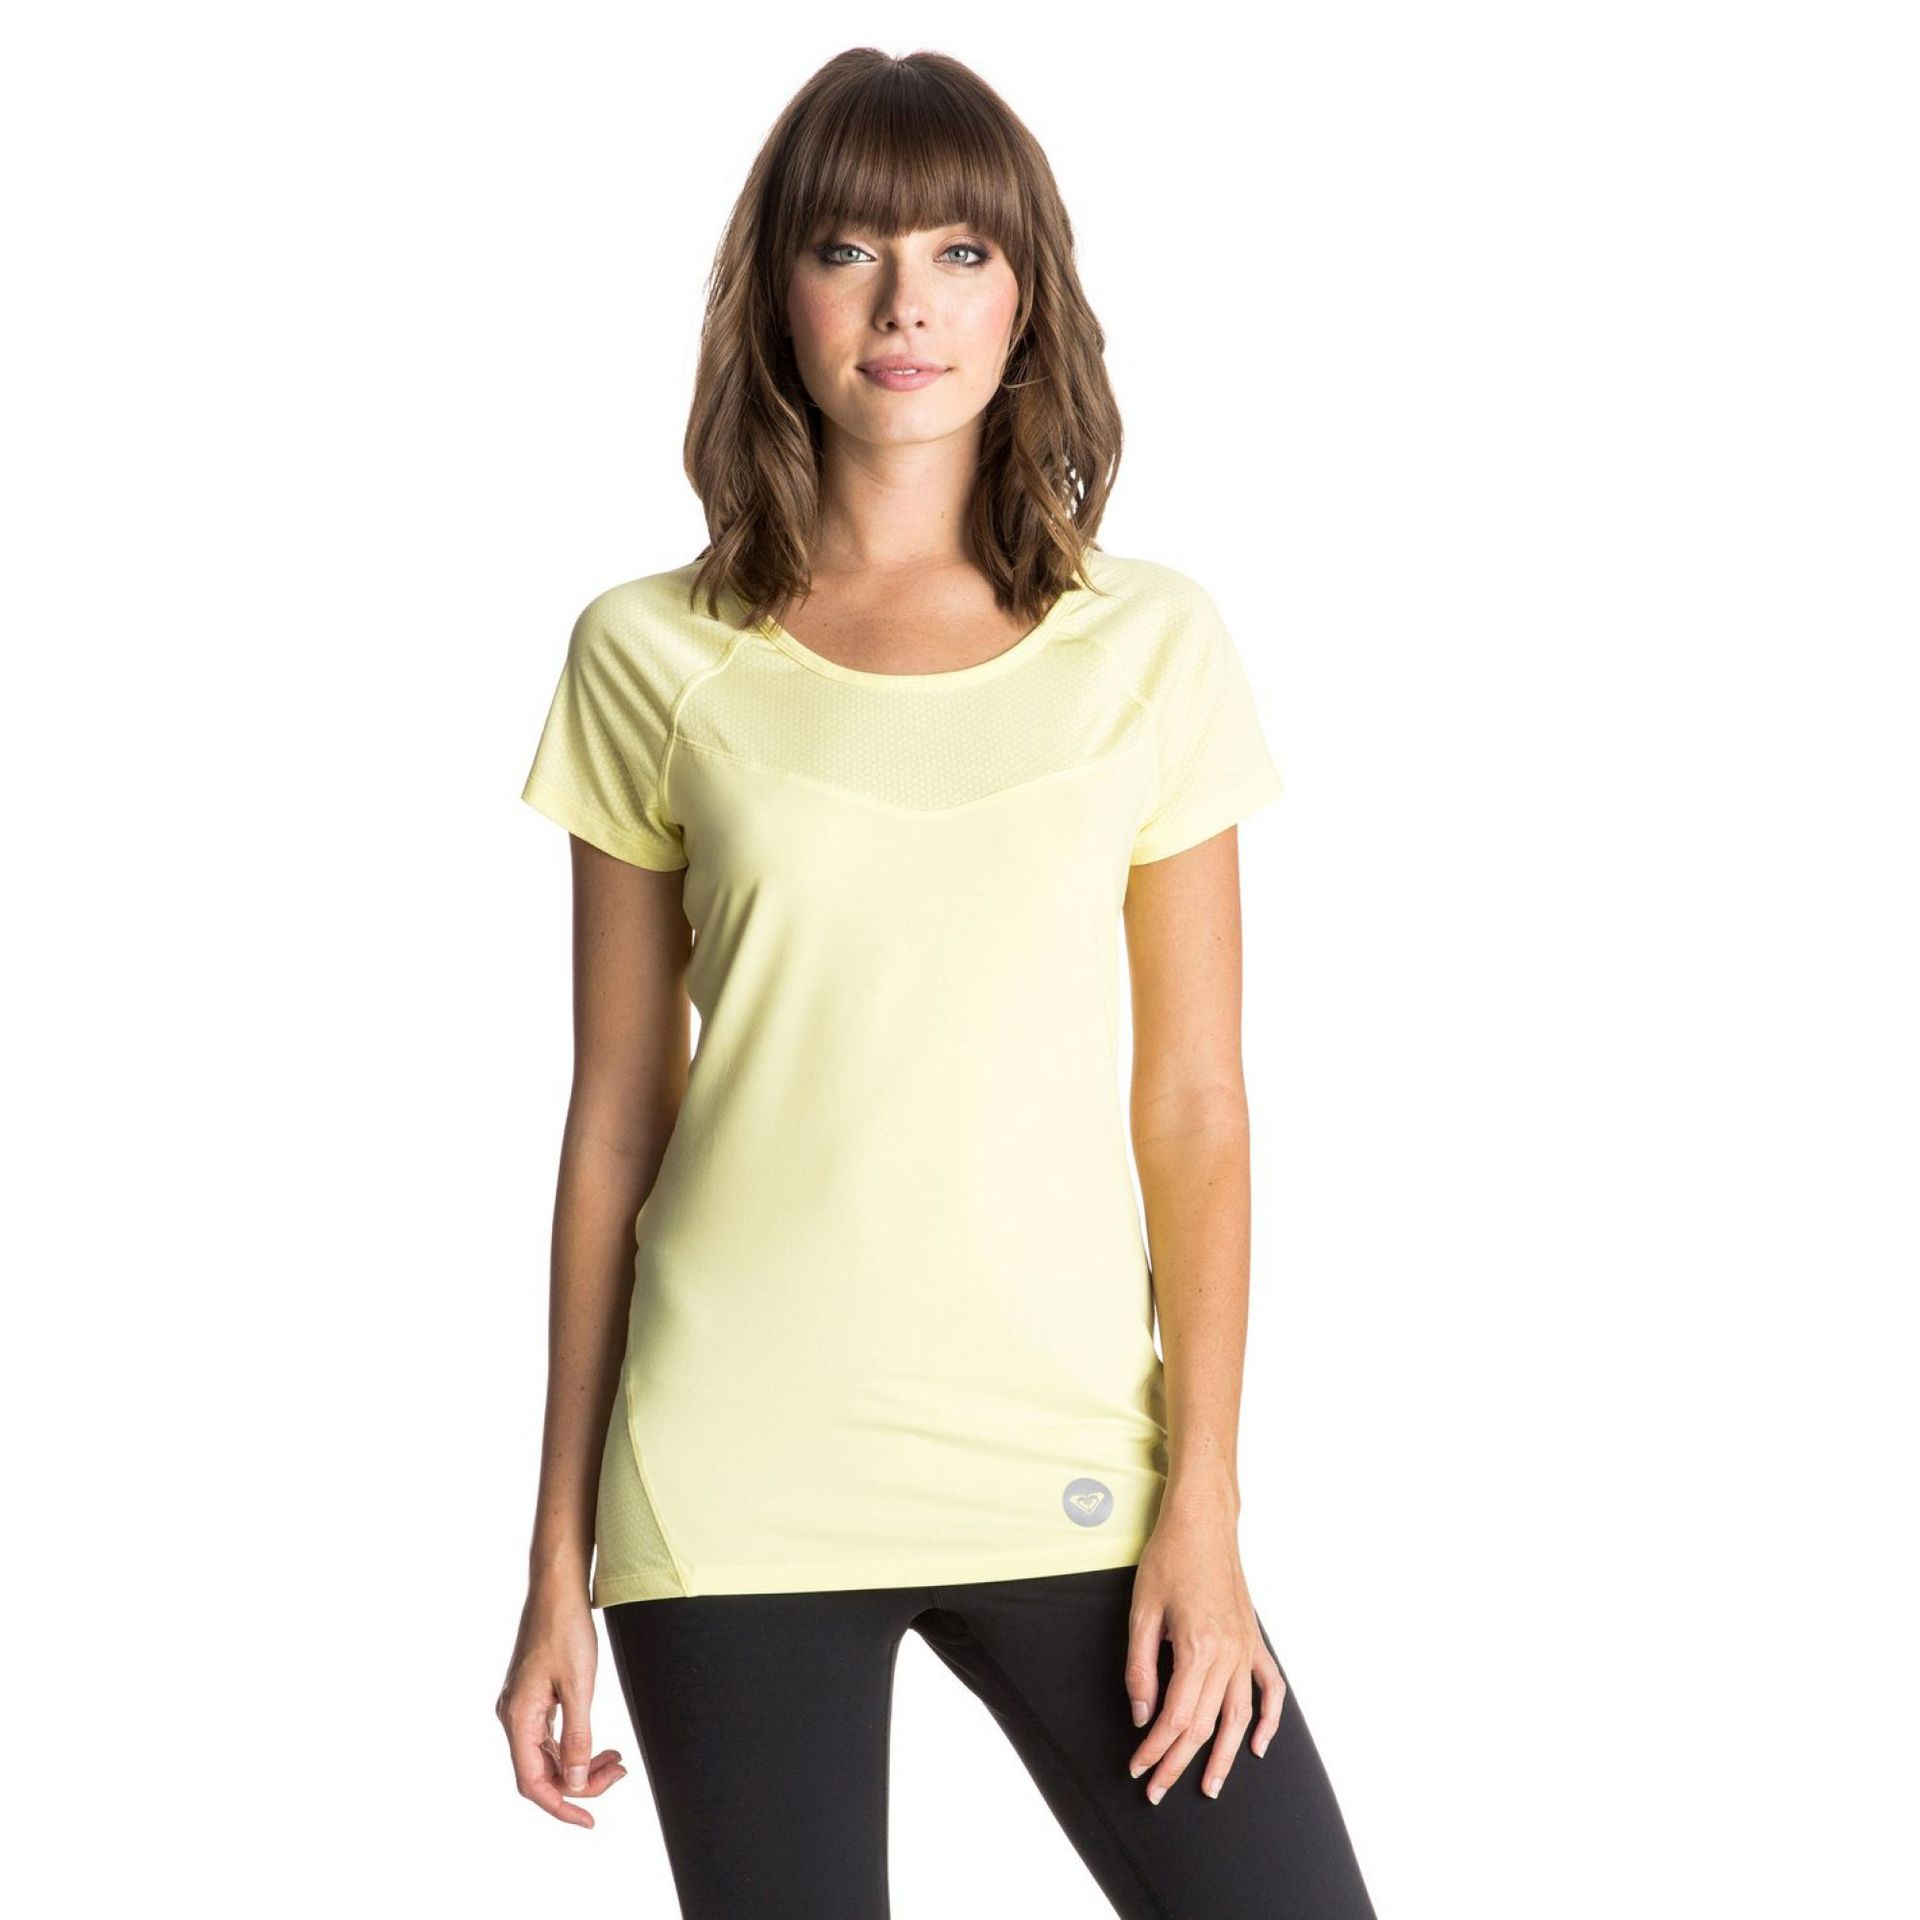 KOSZULKA ROXY TOP TIER T-SHIRT CITRUS